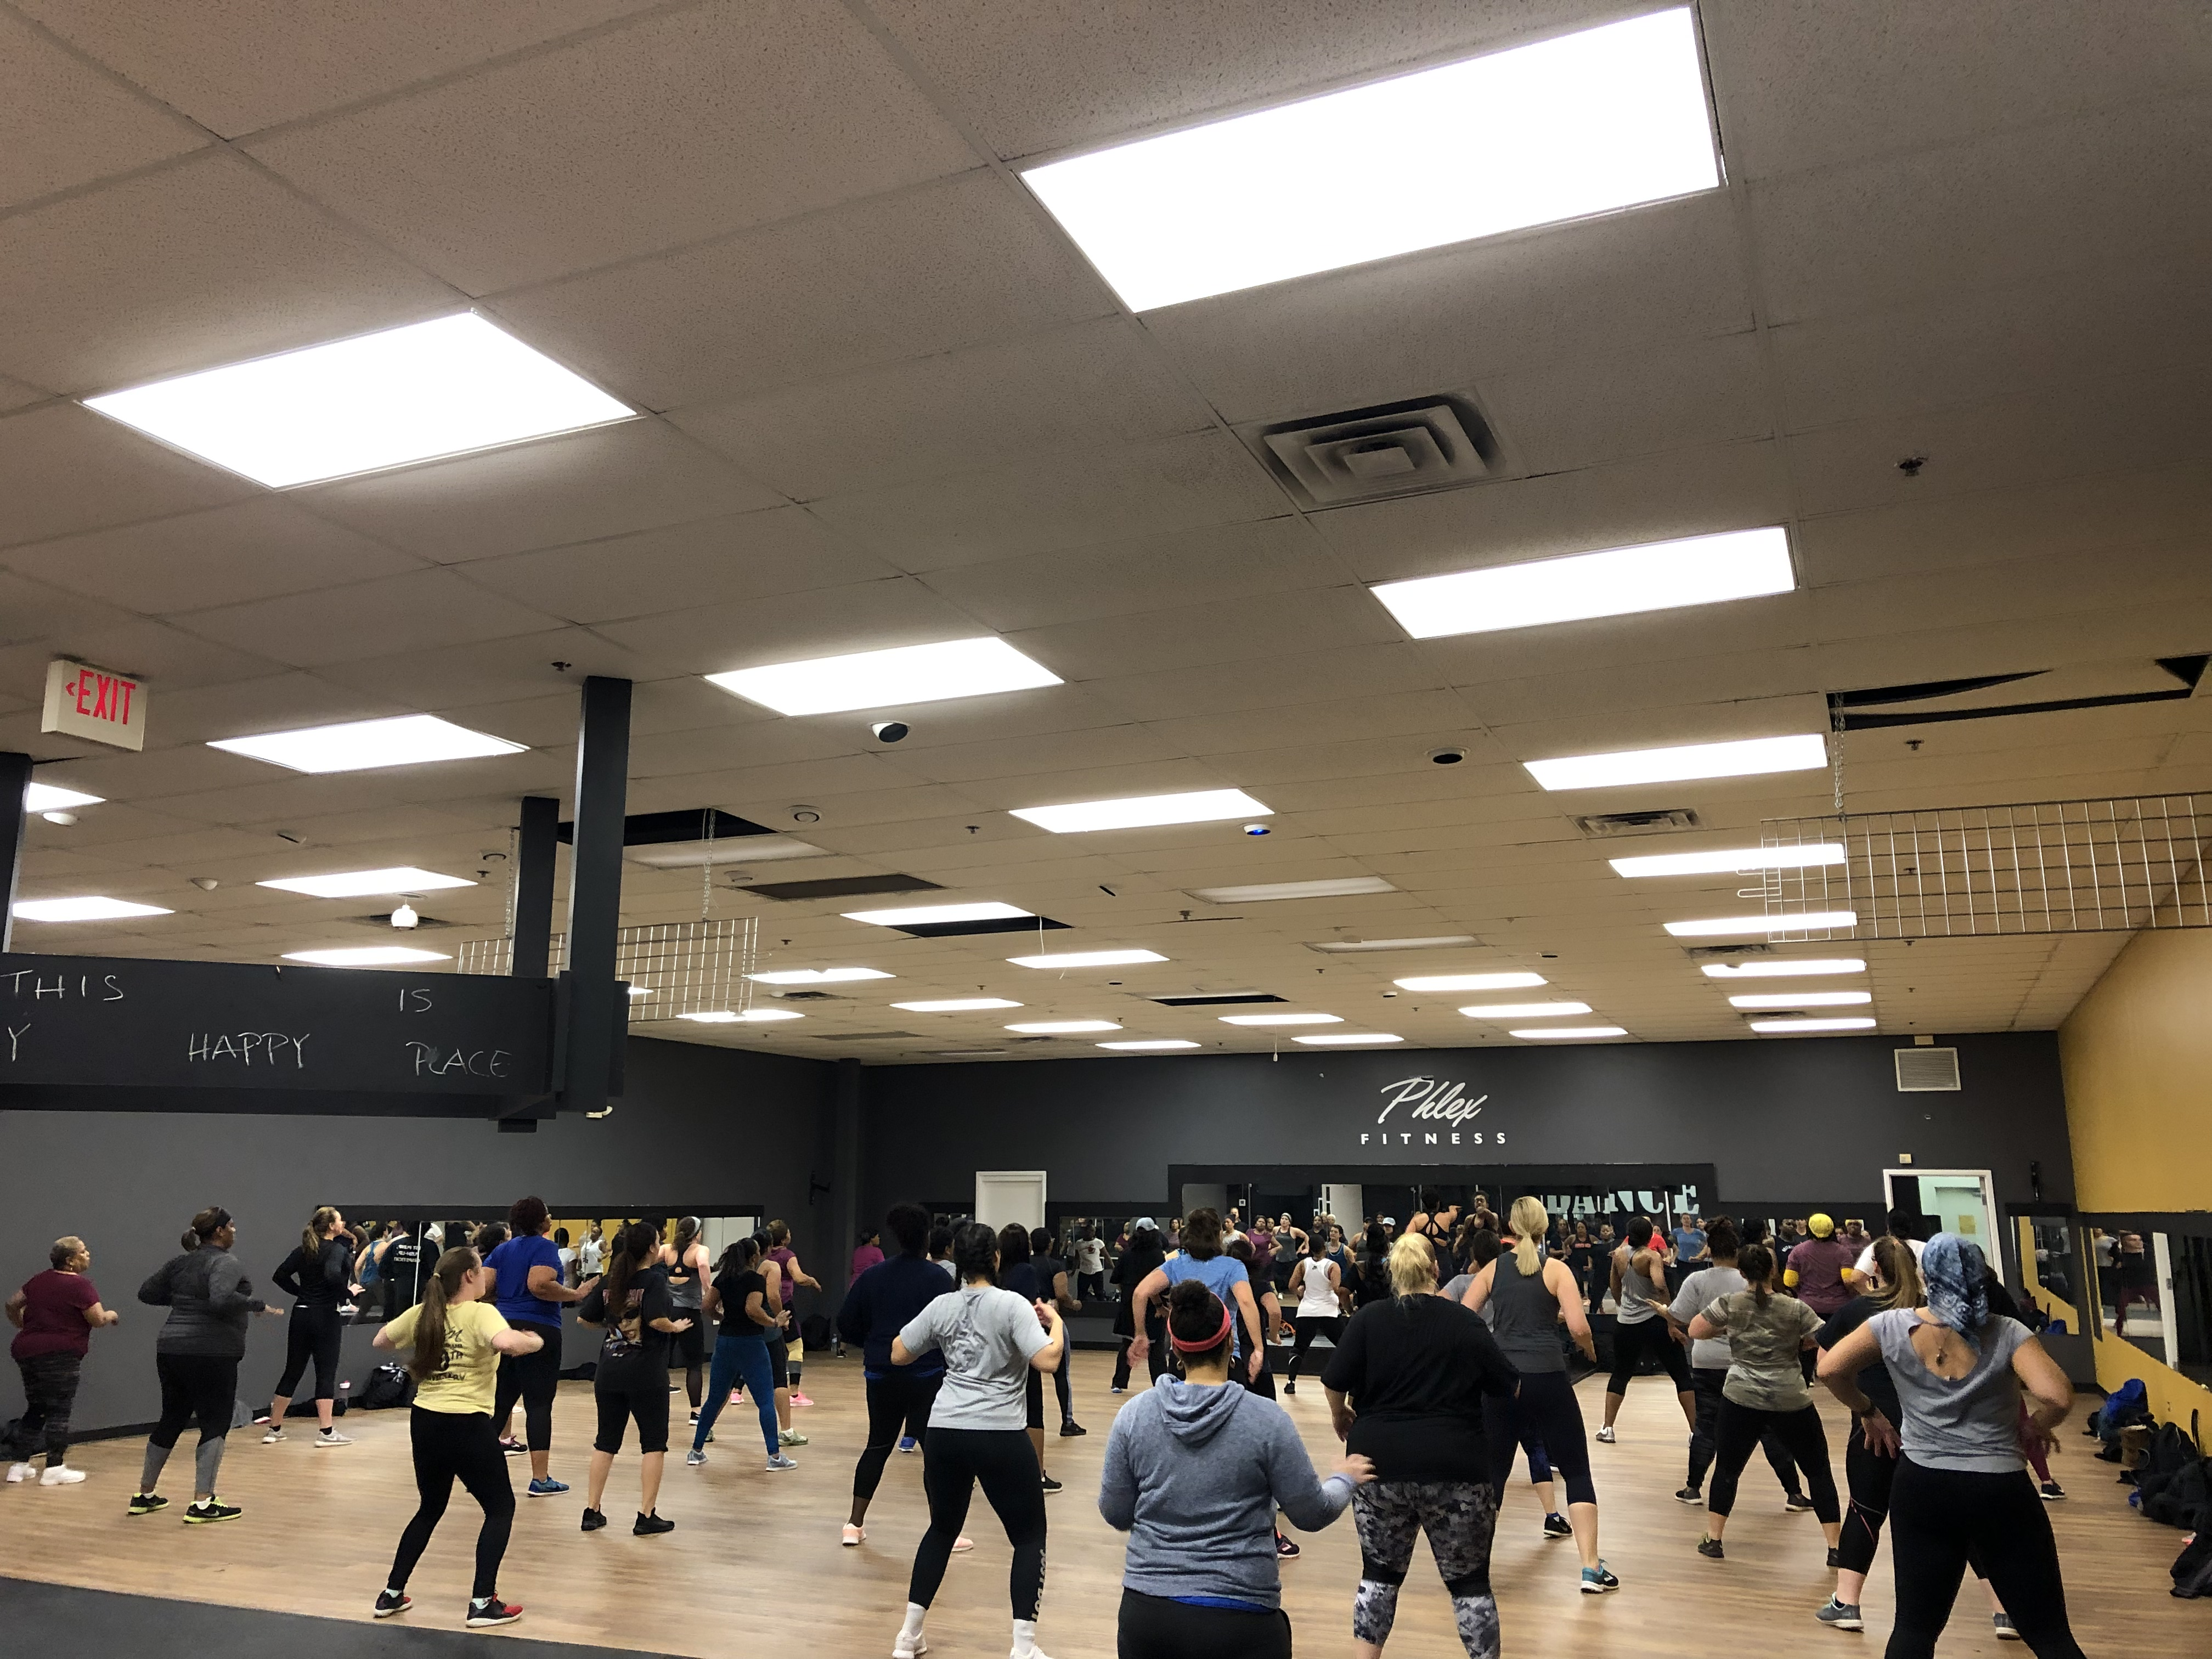 M. Nicholson Hip Hop Fitness dance fitness classes are lead by none other than Mike Nicholson as well as some other dope instructors.